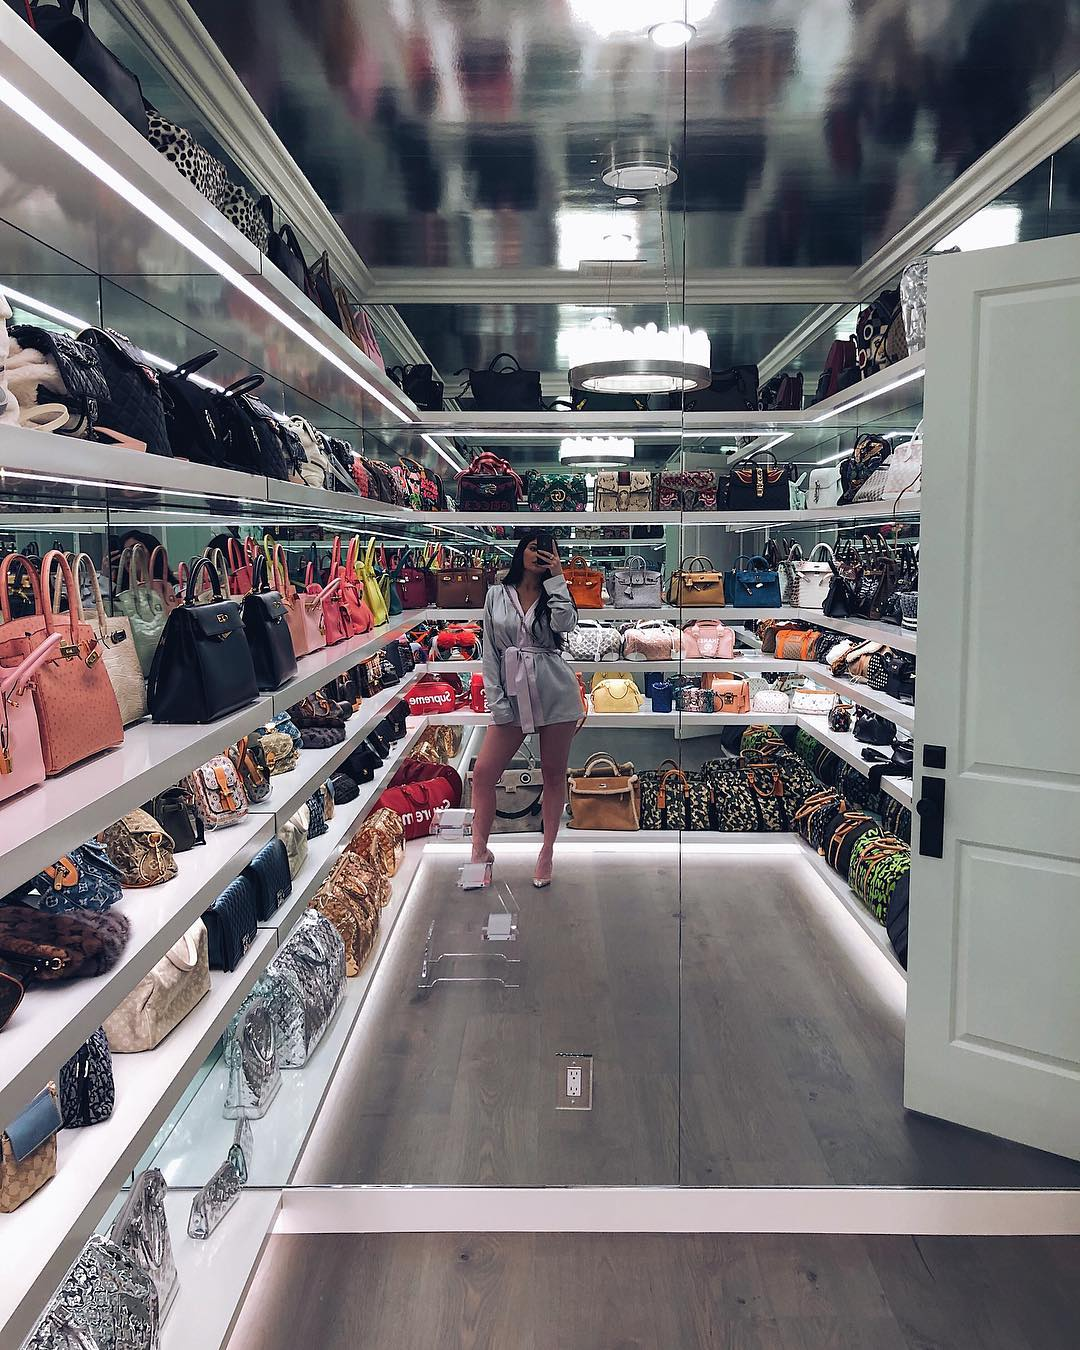 Take a look at Kylie Jenner's Luxurious home from Inside 2